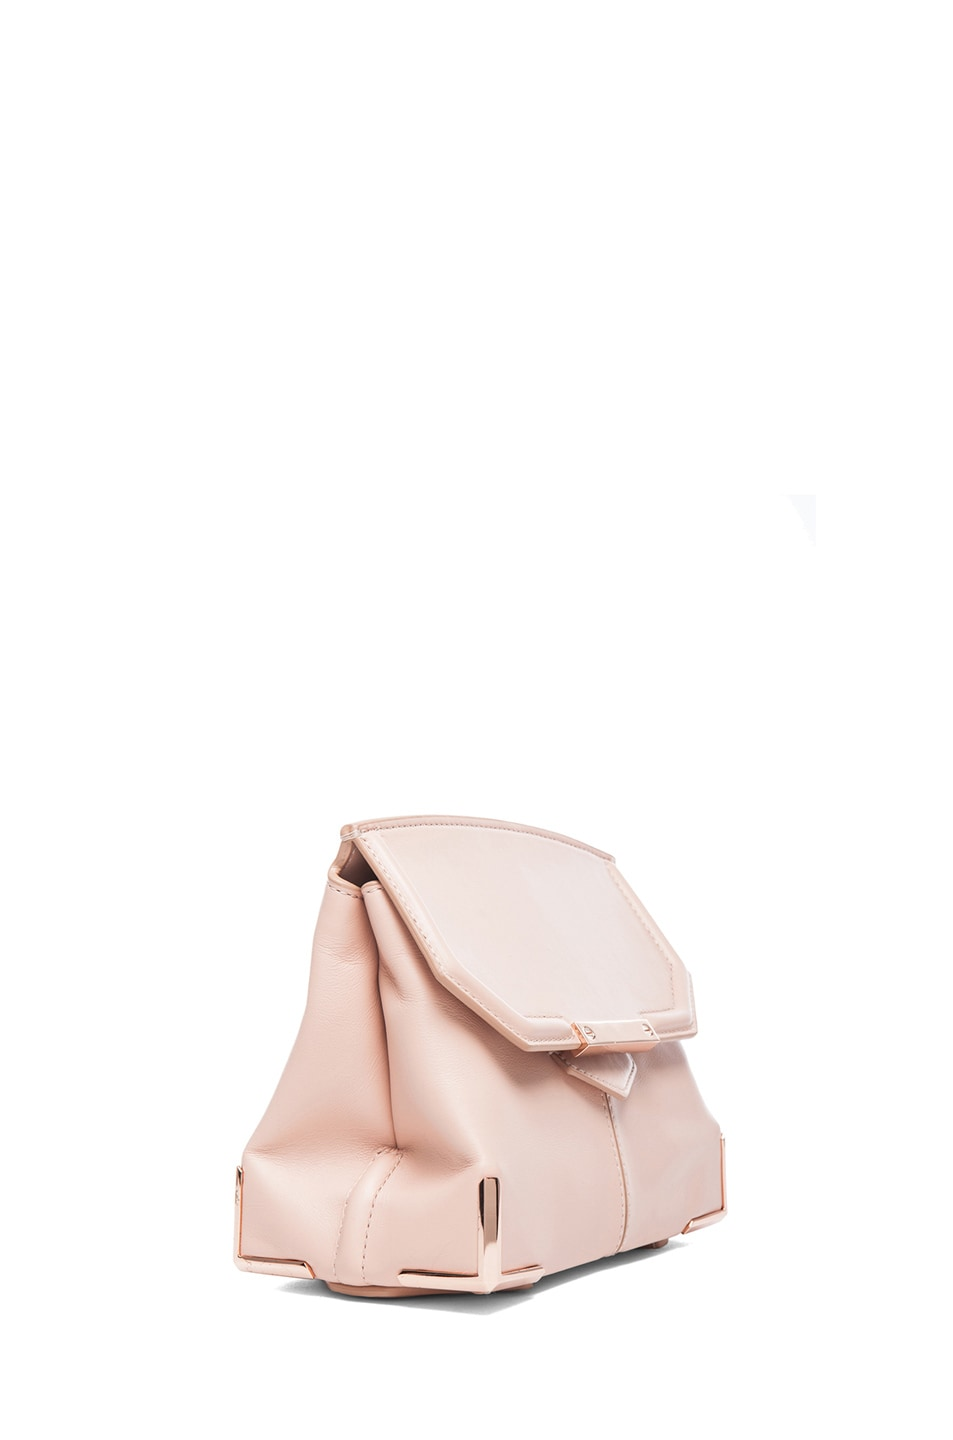 Image 3 of Alexander Wang Marion Handbag in Rose